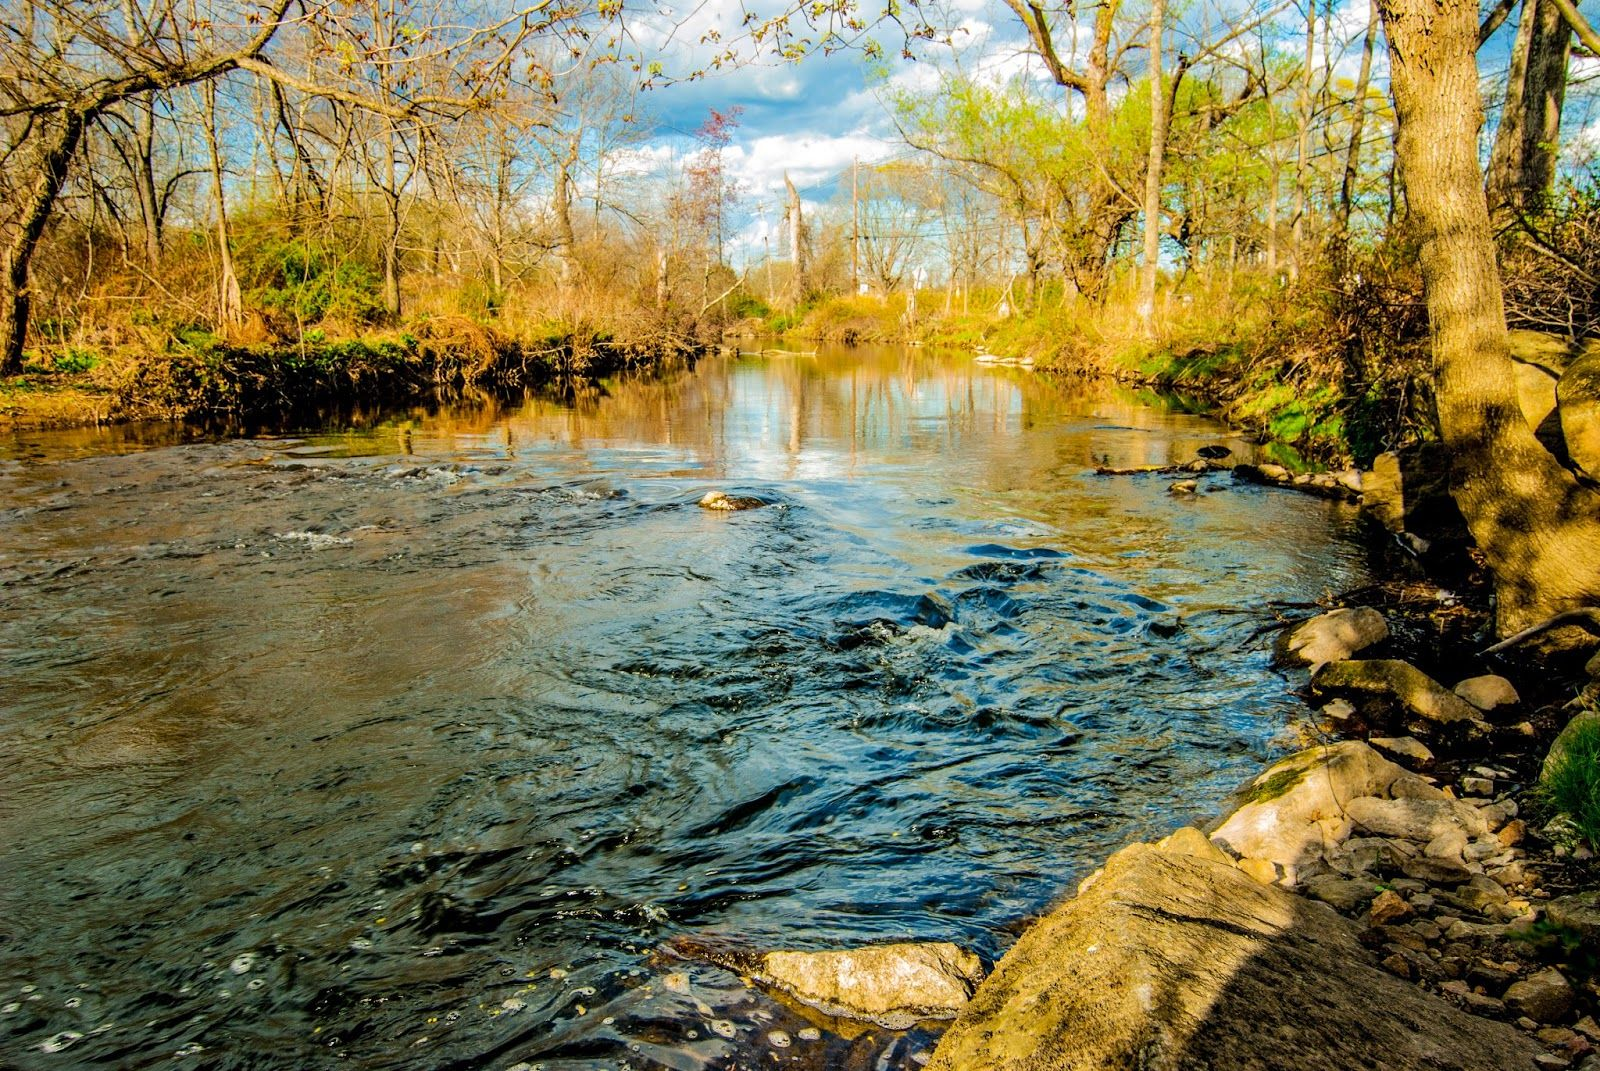 Litton's Fishing Lines: Climate Change in the Raritan Headwaters: Columbia University Students Speak